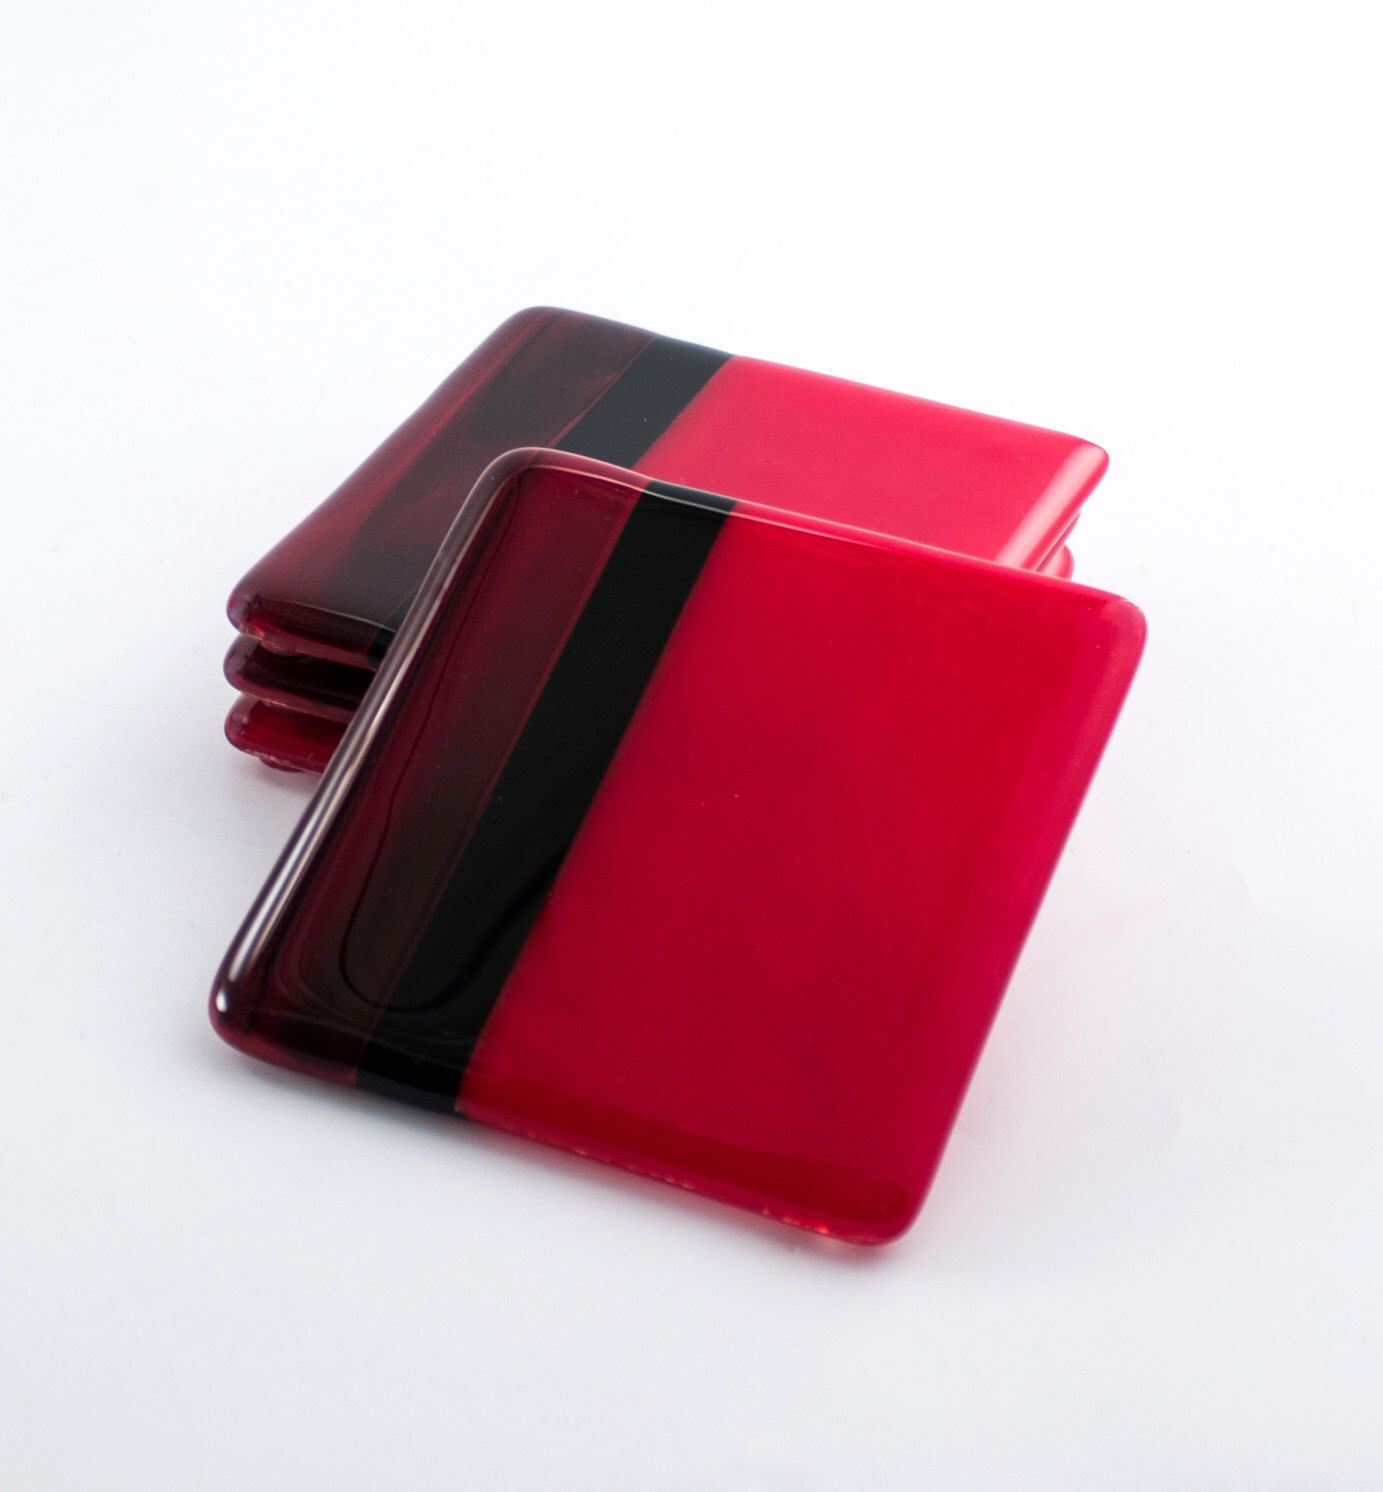 Red and Black Glass Drink Coasters Coffee Table Decor Modern